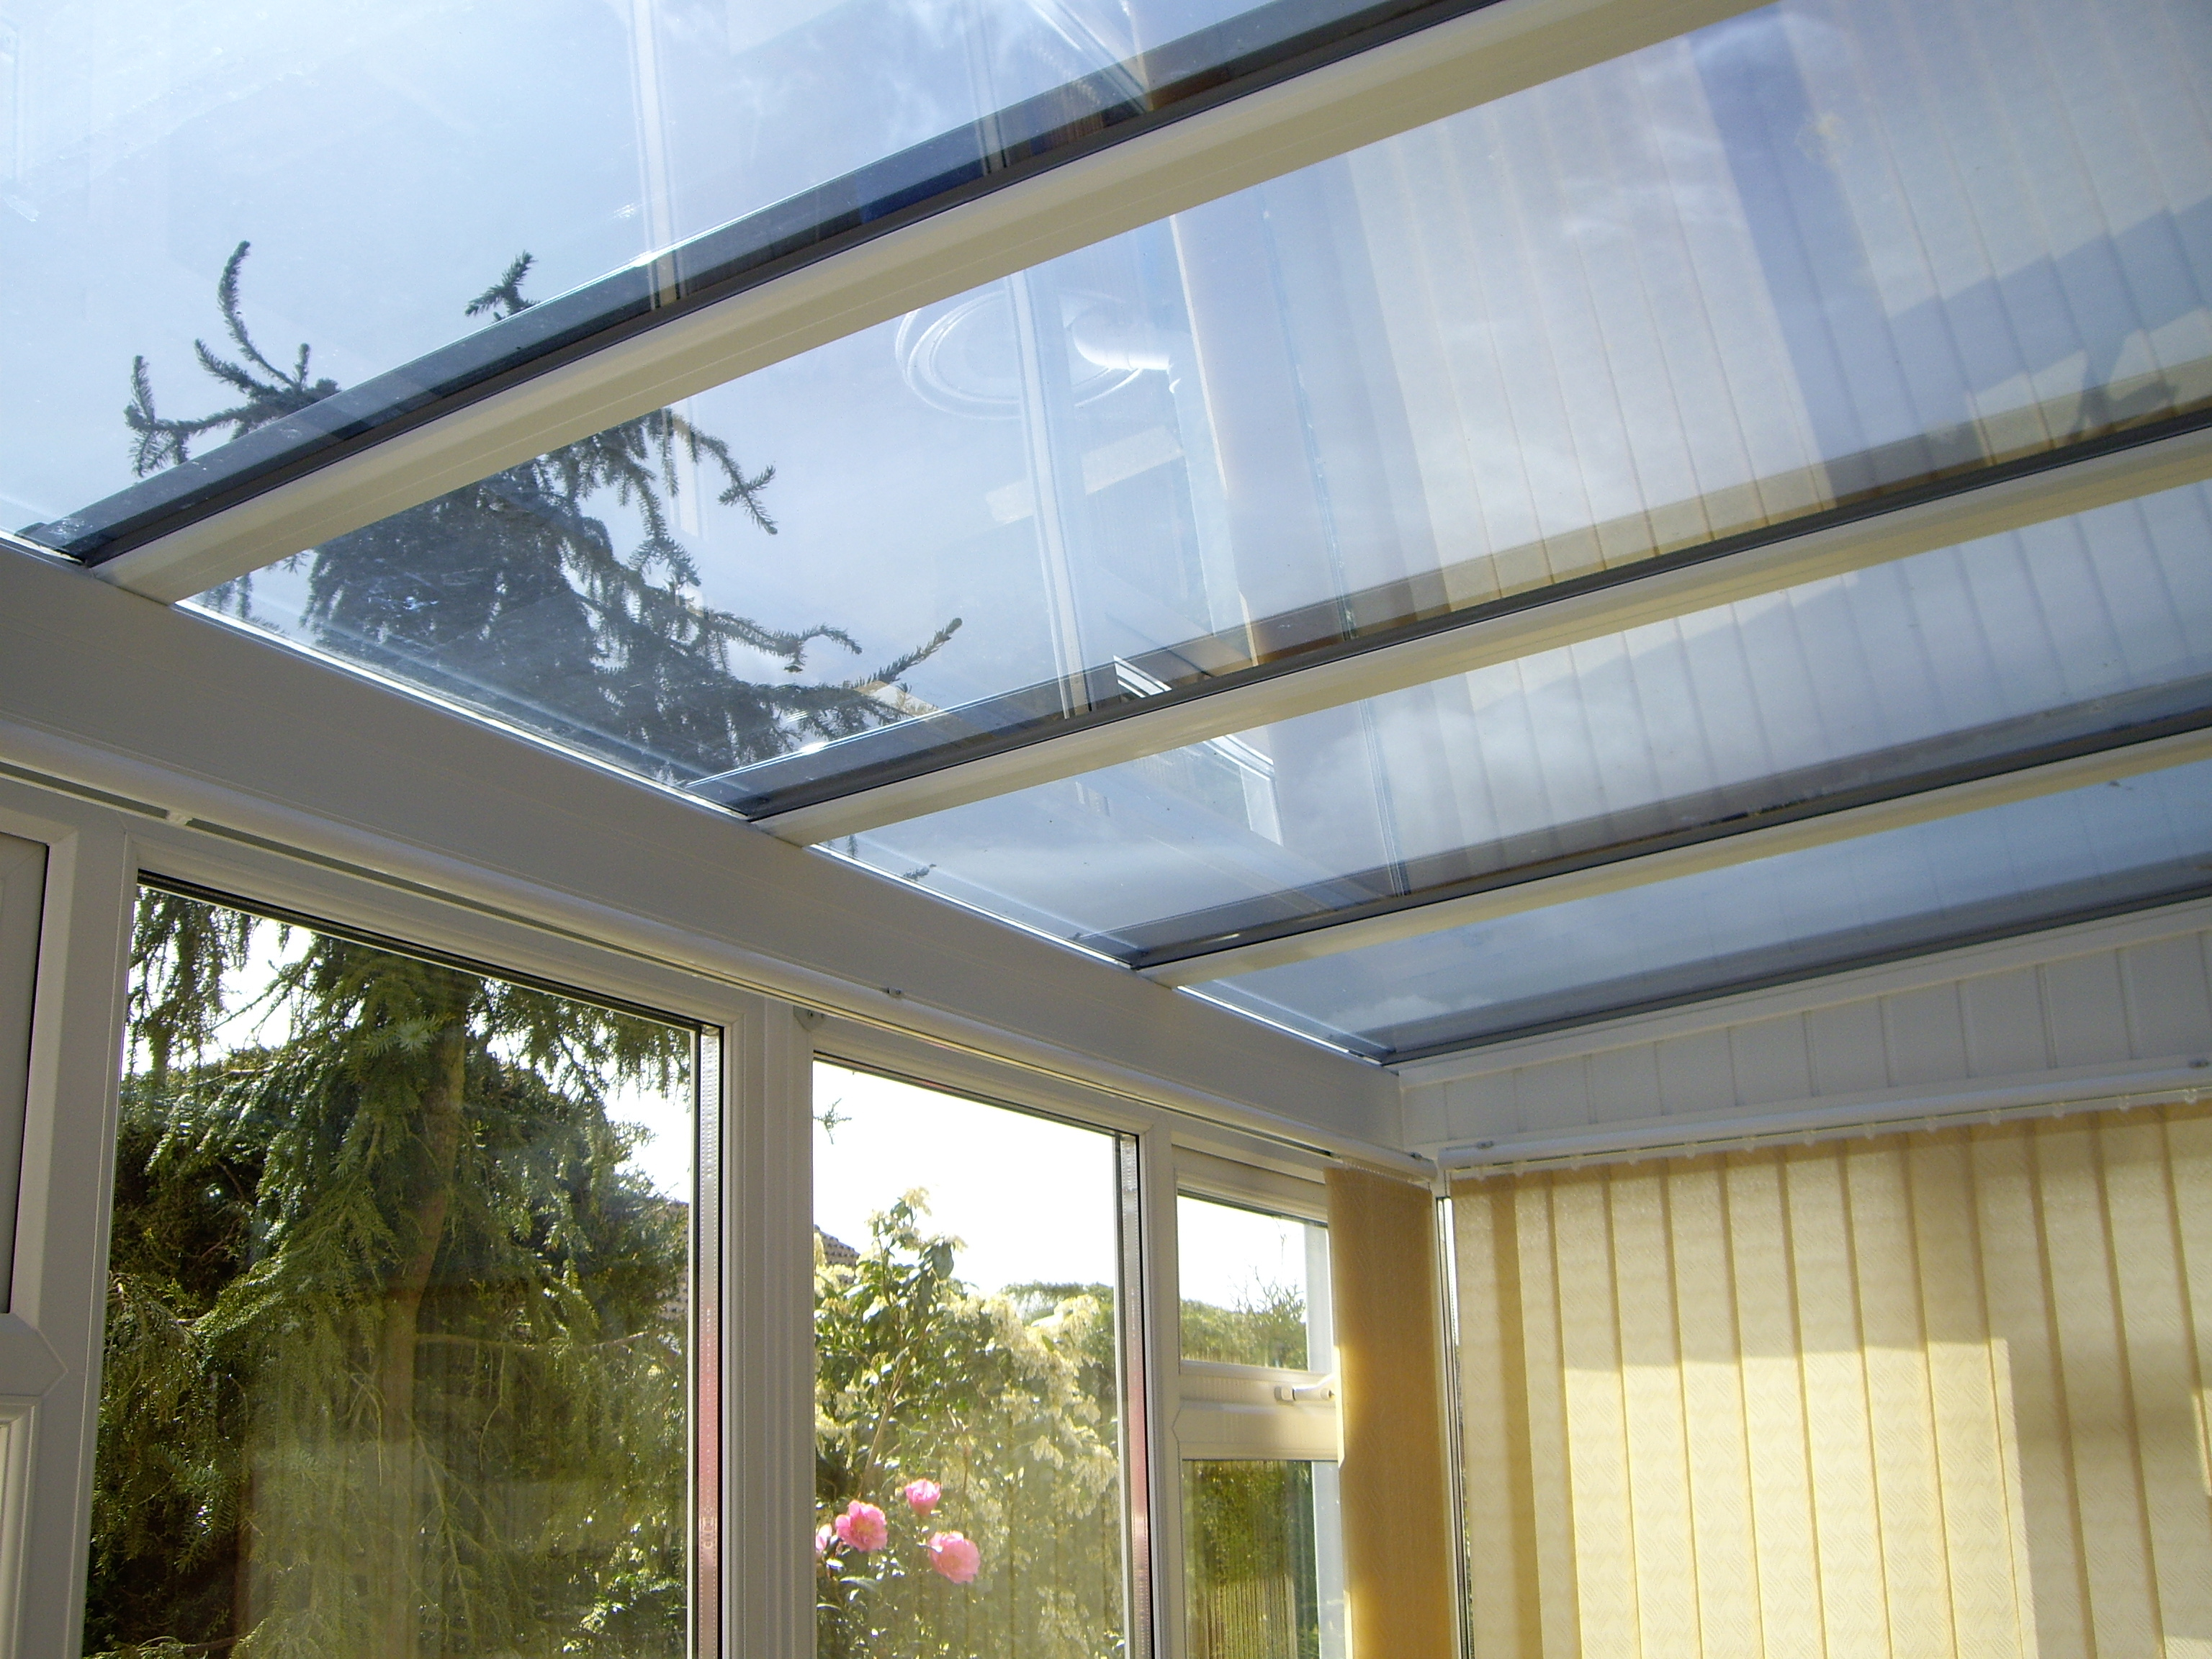 Dual 15 solar window film fitted to conservatory glass roof Crediton Devon Tinting Express Ltd